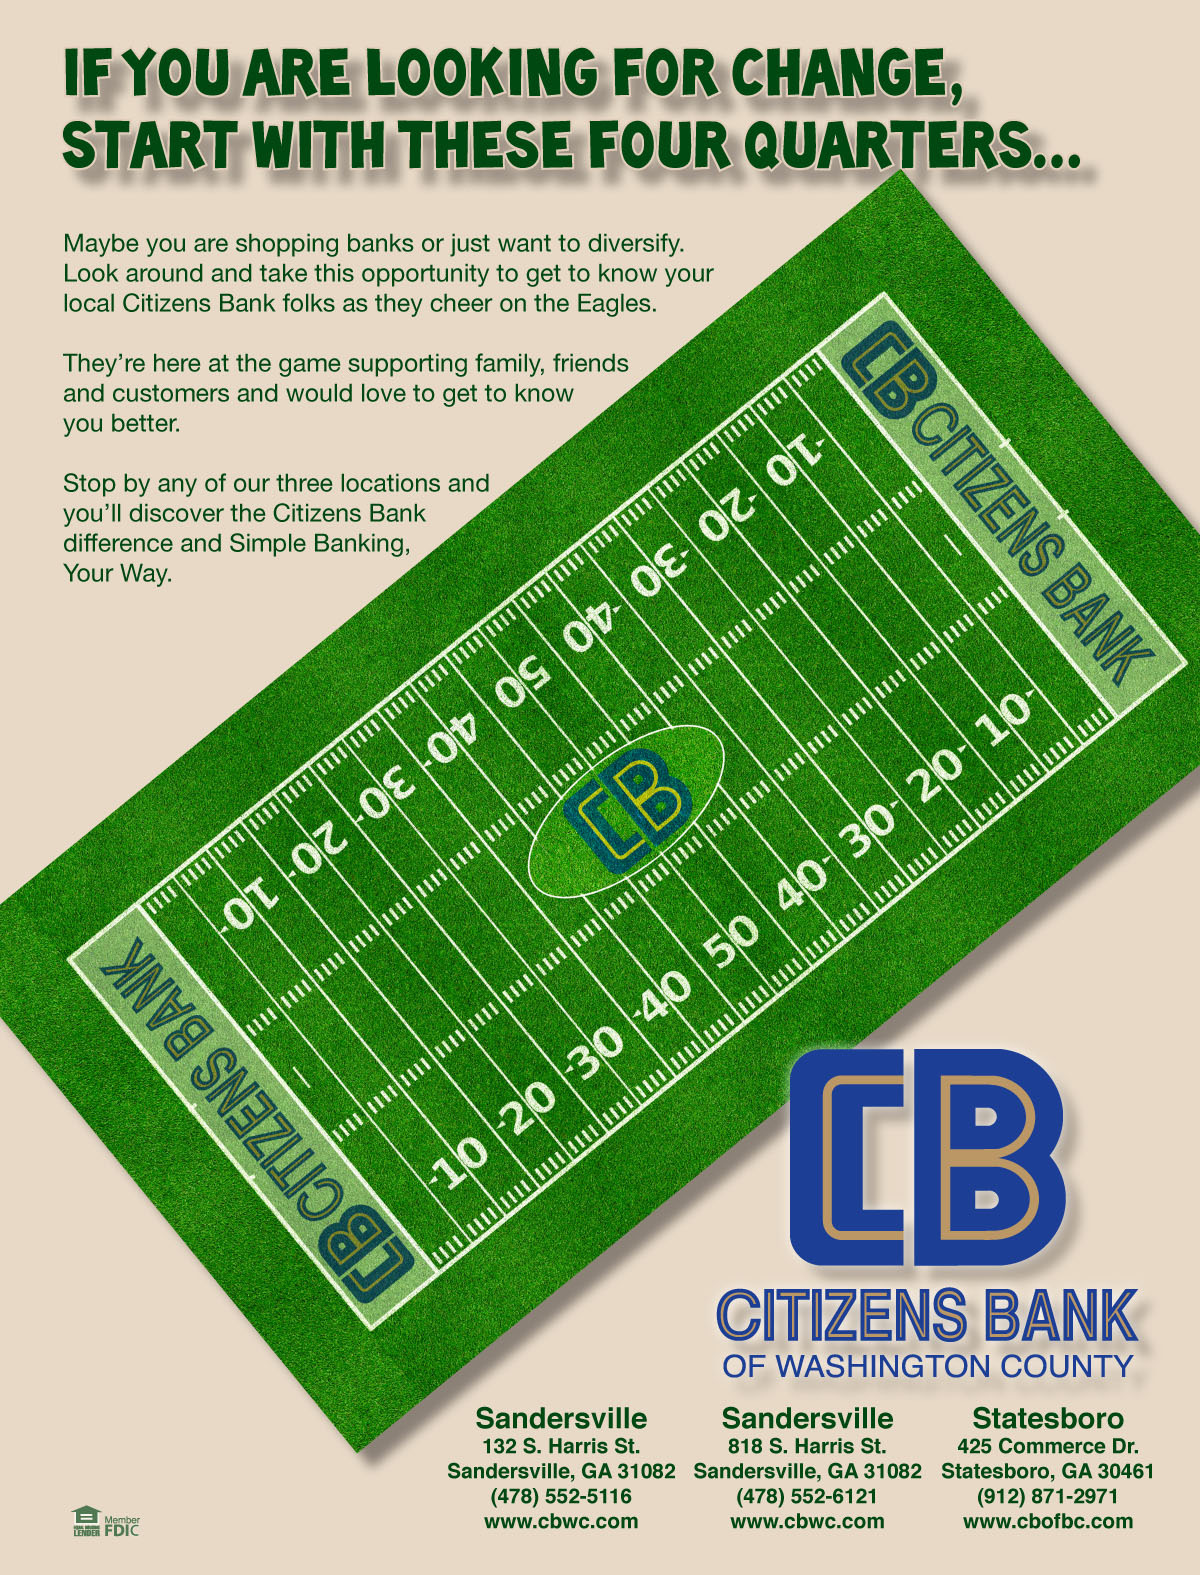 WashingtonCountyBankProgram2013.jpg